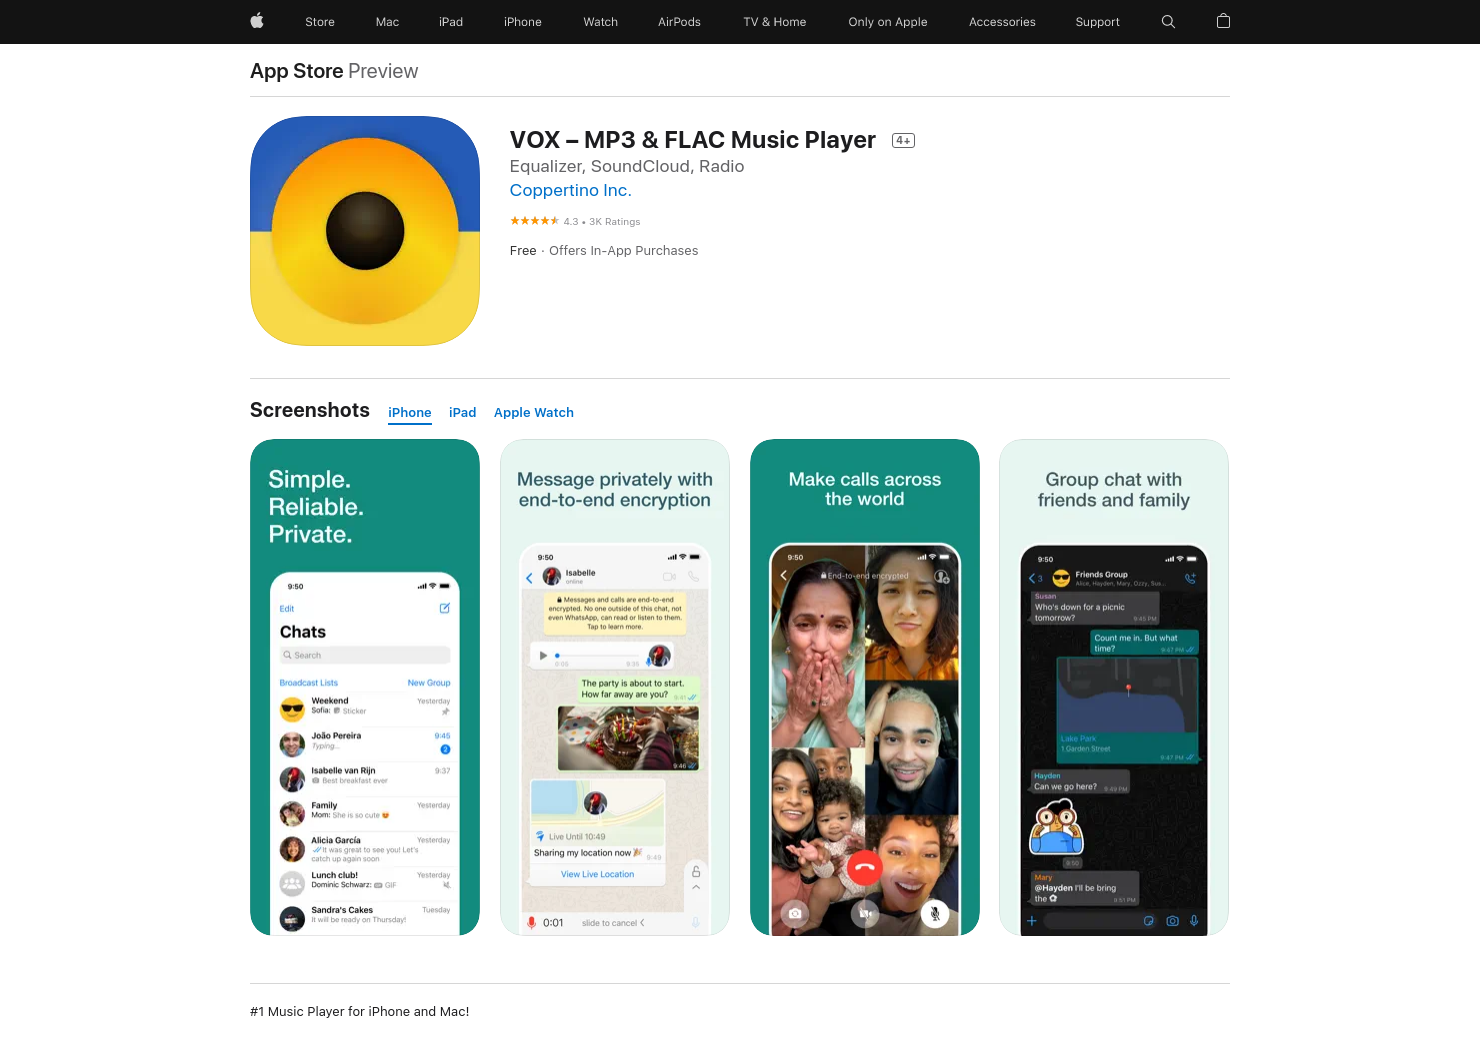 VOX Music Player for iPad